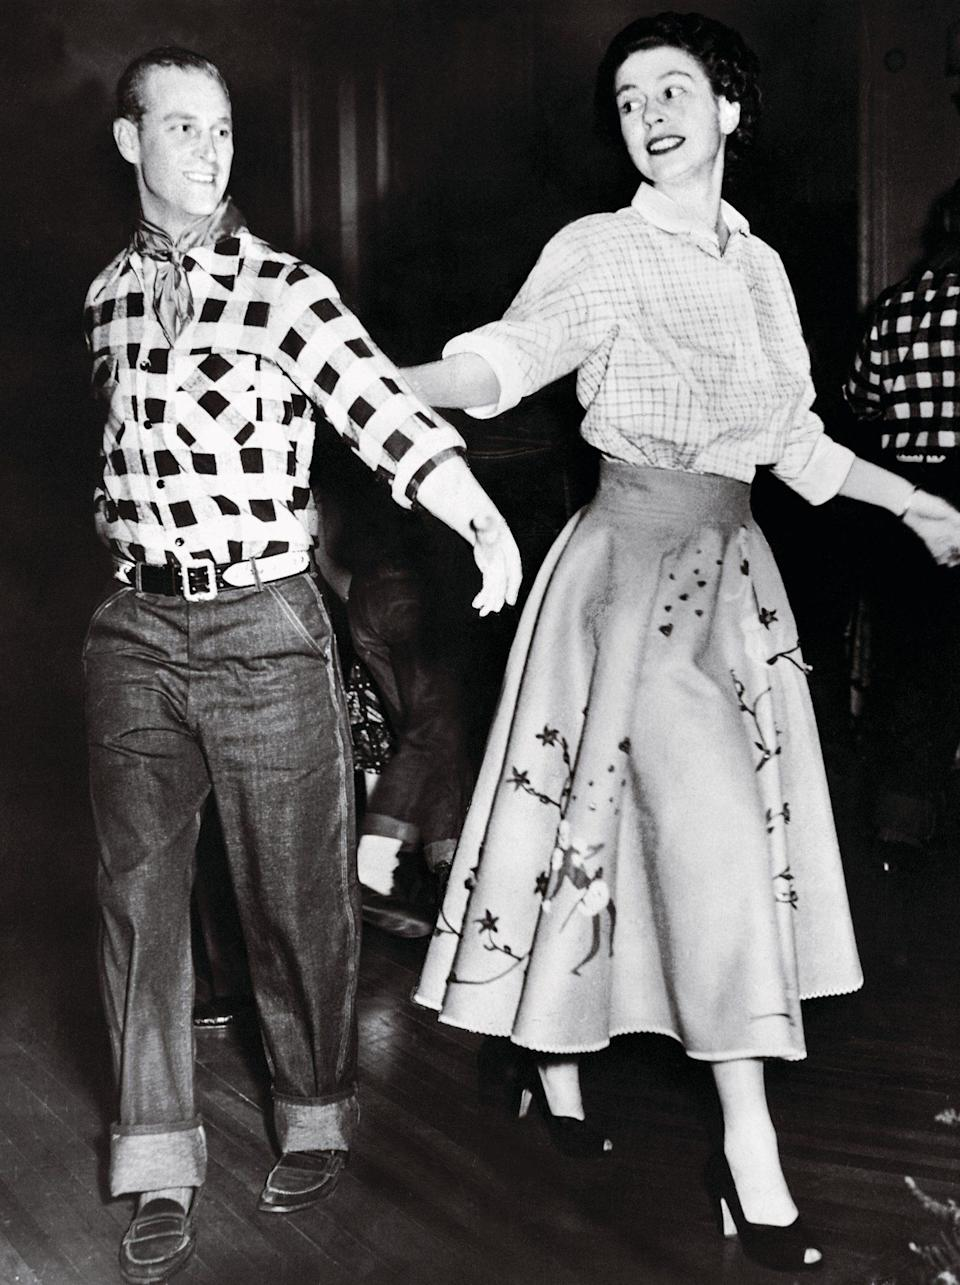 <p>Two years before her coronation, then-Princess Elizabeth grabbed her partner — her husband of four years, naturally — for a spin during a royal tour of Canada in 1951. The pair dressed the part (complete with a neckerchief for Philip!) as they enjoyed an old-fashioned square dance in Ottawa.</p>